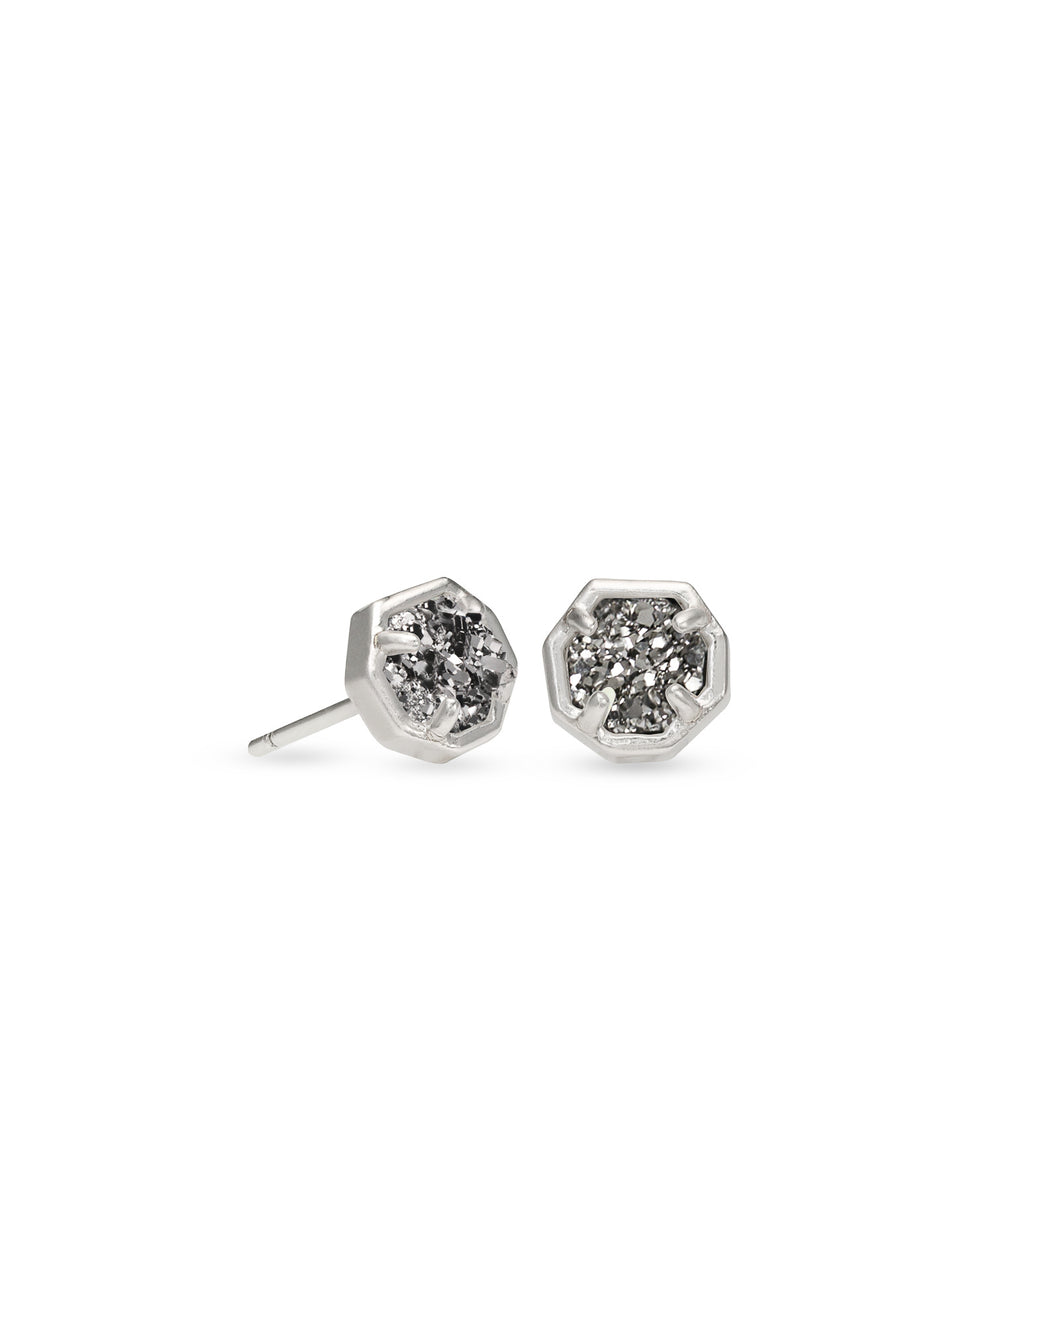 Kendra Scott Nola Silver Stud Earrings In Platinum Drusy